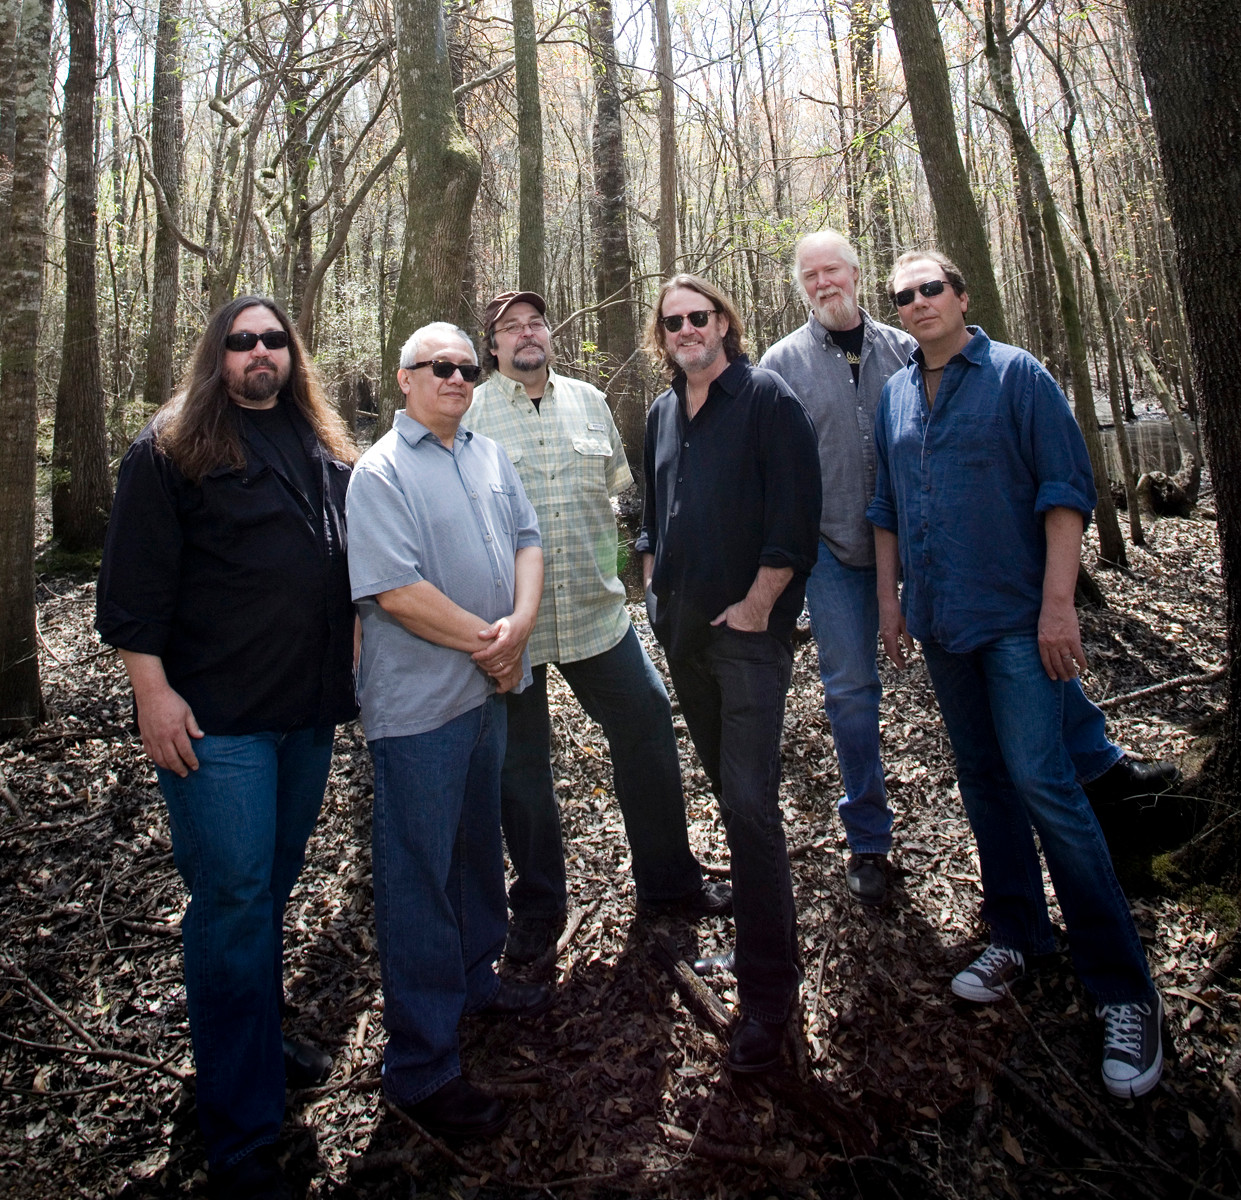 Southern rockers Widespread Panic (pictured) of Athens, Ga., won�t run for the exits Nov. 6 at the Times-Union Center for the Performing Arts in Downtown Jacksonville. Roosevelt Collier and Friends join JJ Grey for an aftershow that same night at Underbelly.